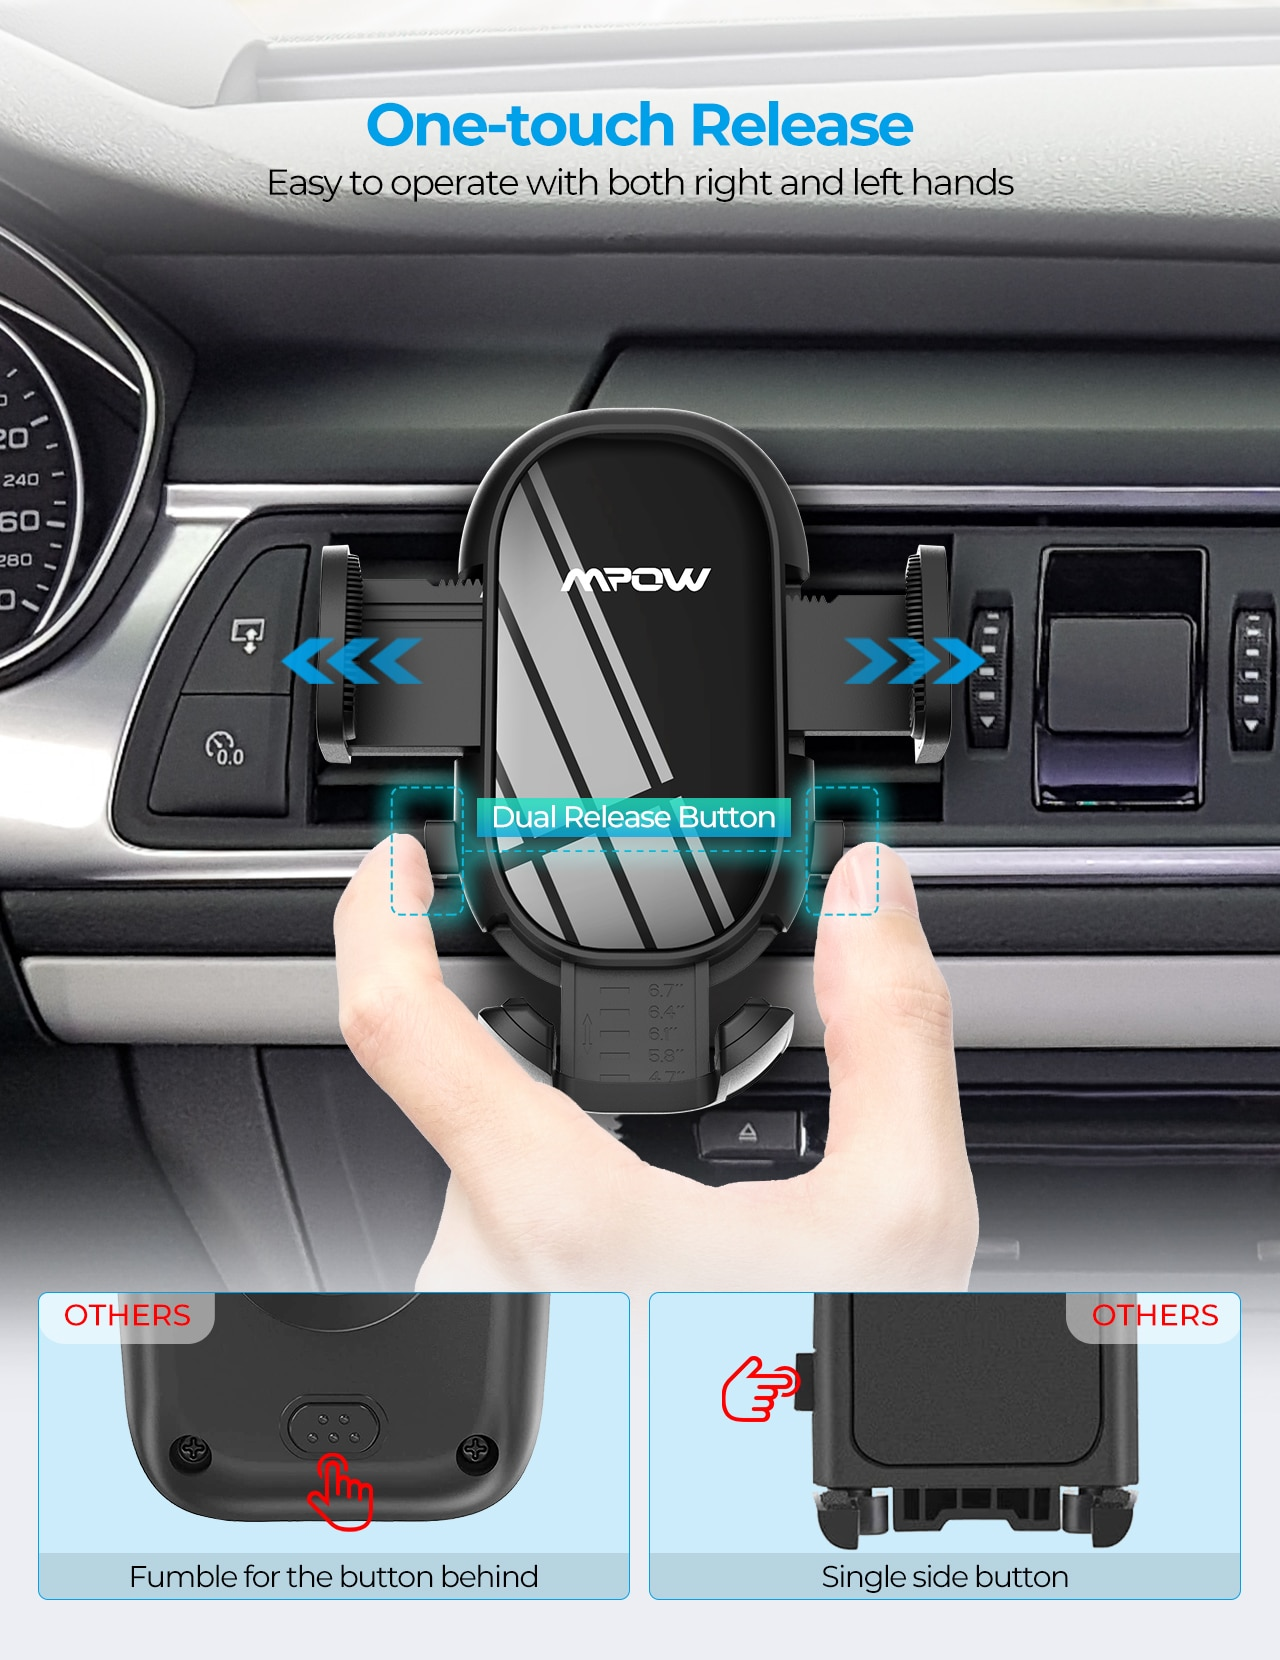 H8b8e92842e8e4643a56313c7e5a663c2D - MPOW CA163 Universal Air Vent Car Phone Mount with Stable Clip and Dual Release Button Compatible with iPhone 12 11 Pro and More